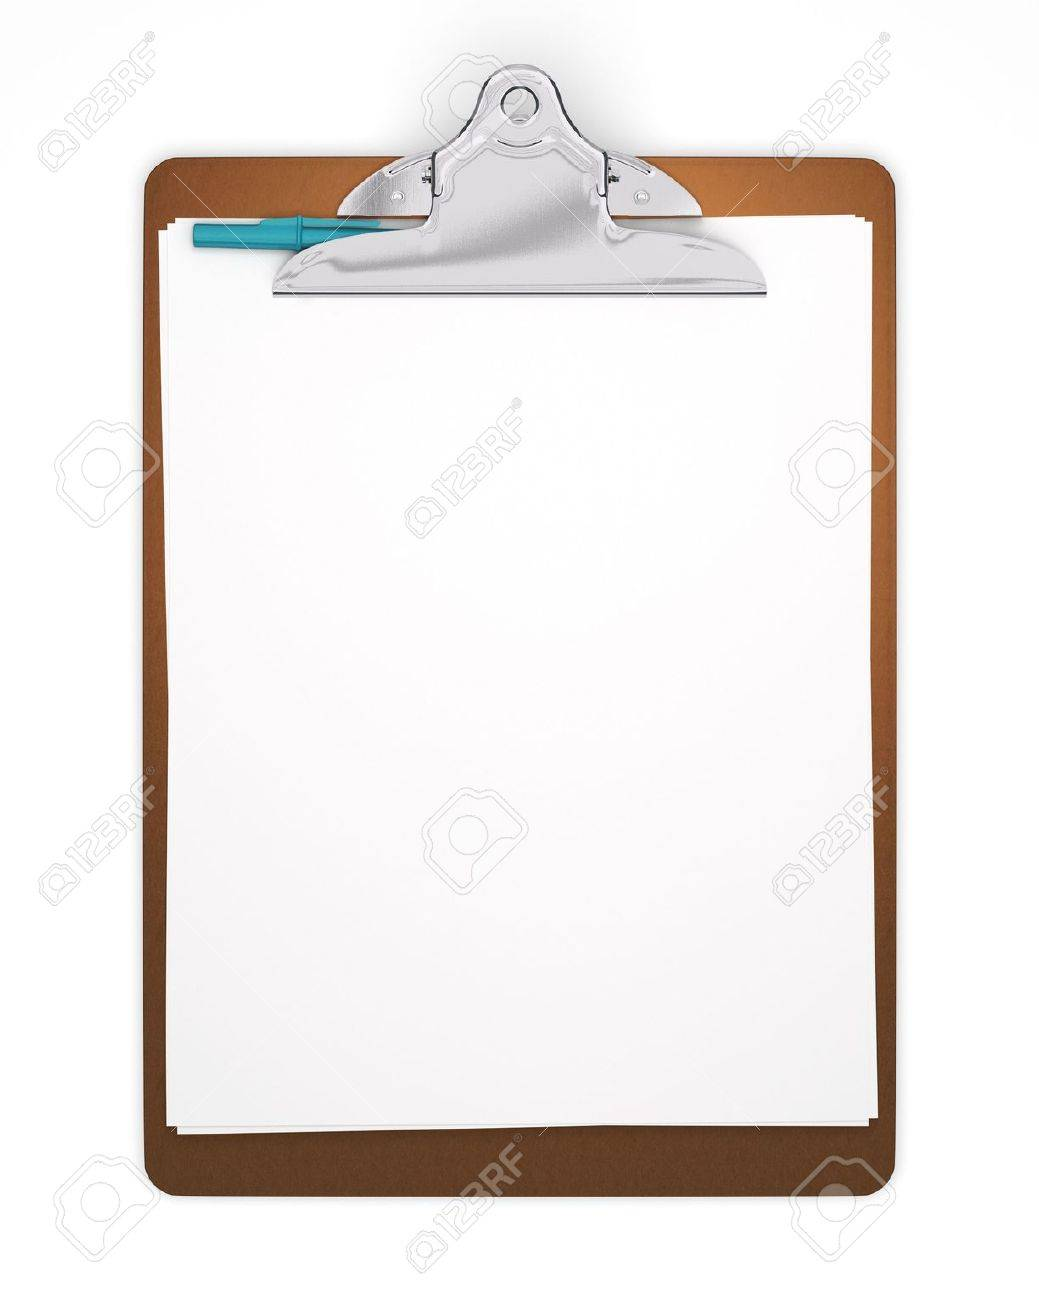 Blank Clipboard with Pen - Isolated - 5109744